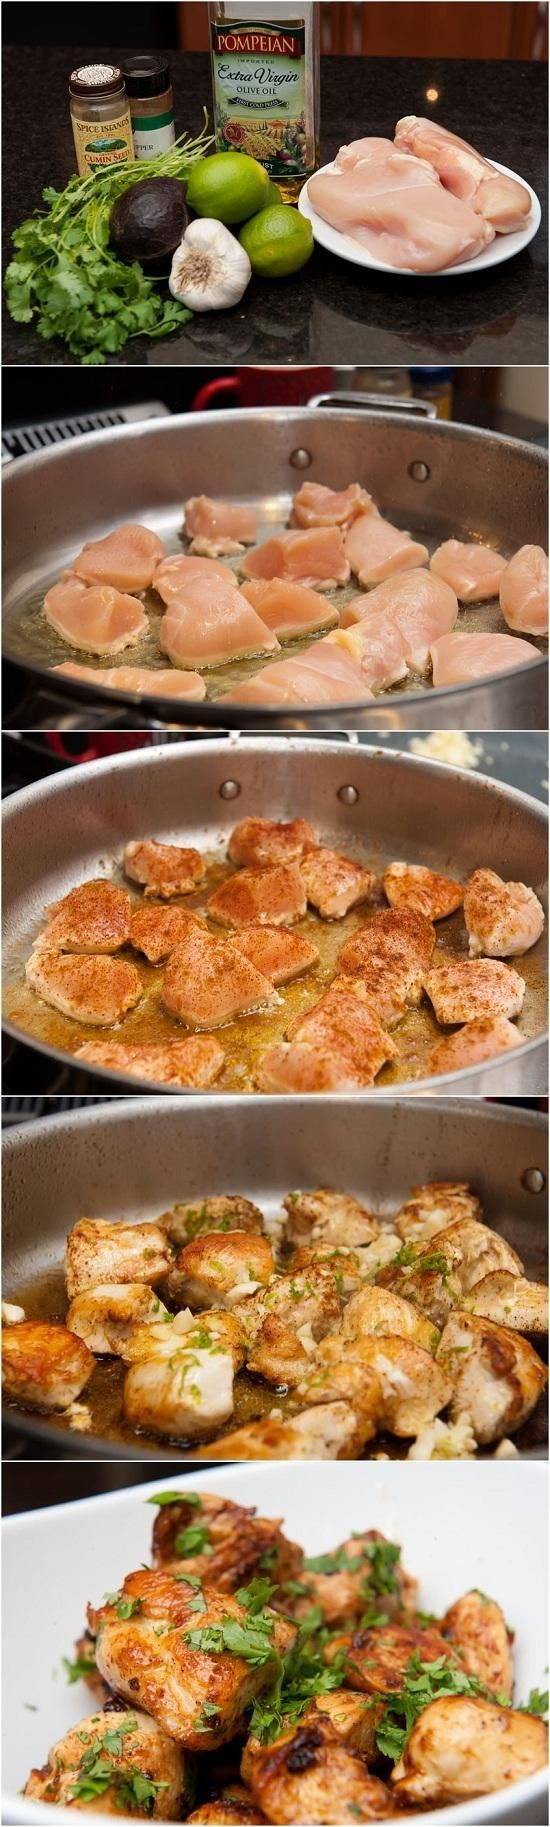 Quick Lime Cilantro Chicken - Love with recipehttp://pinterest.com/pin/162692605262770860/